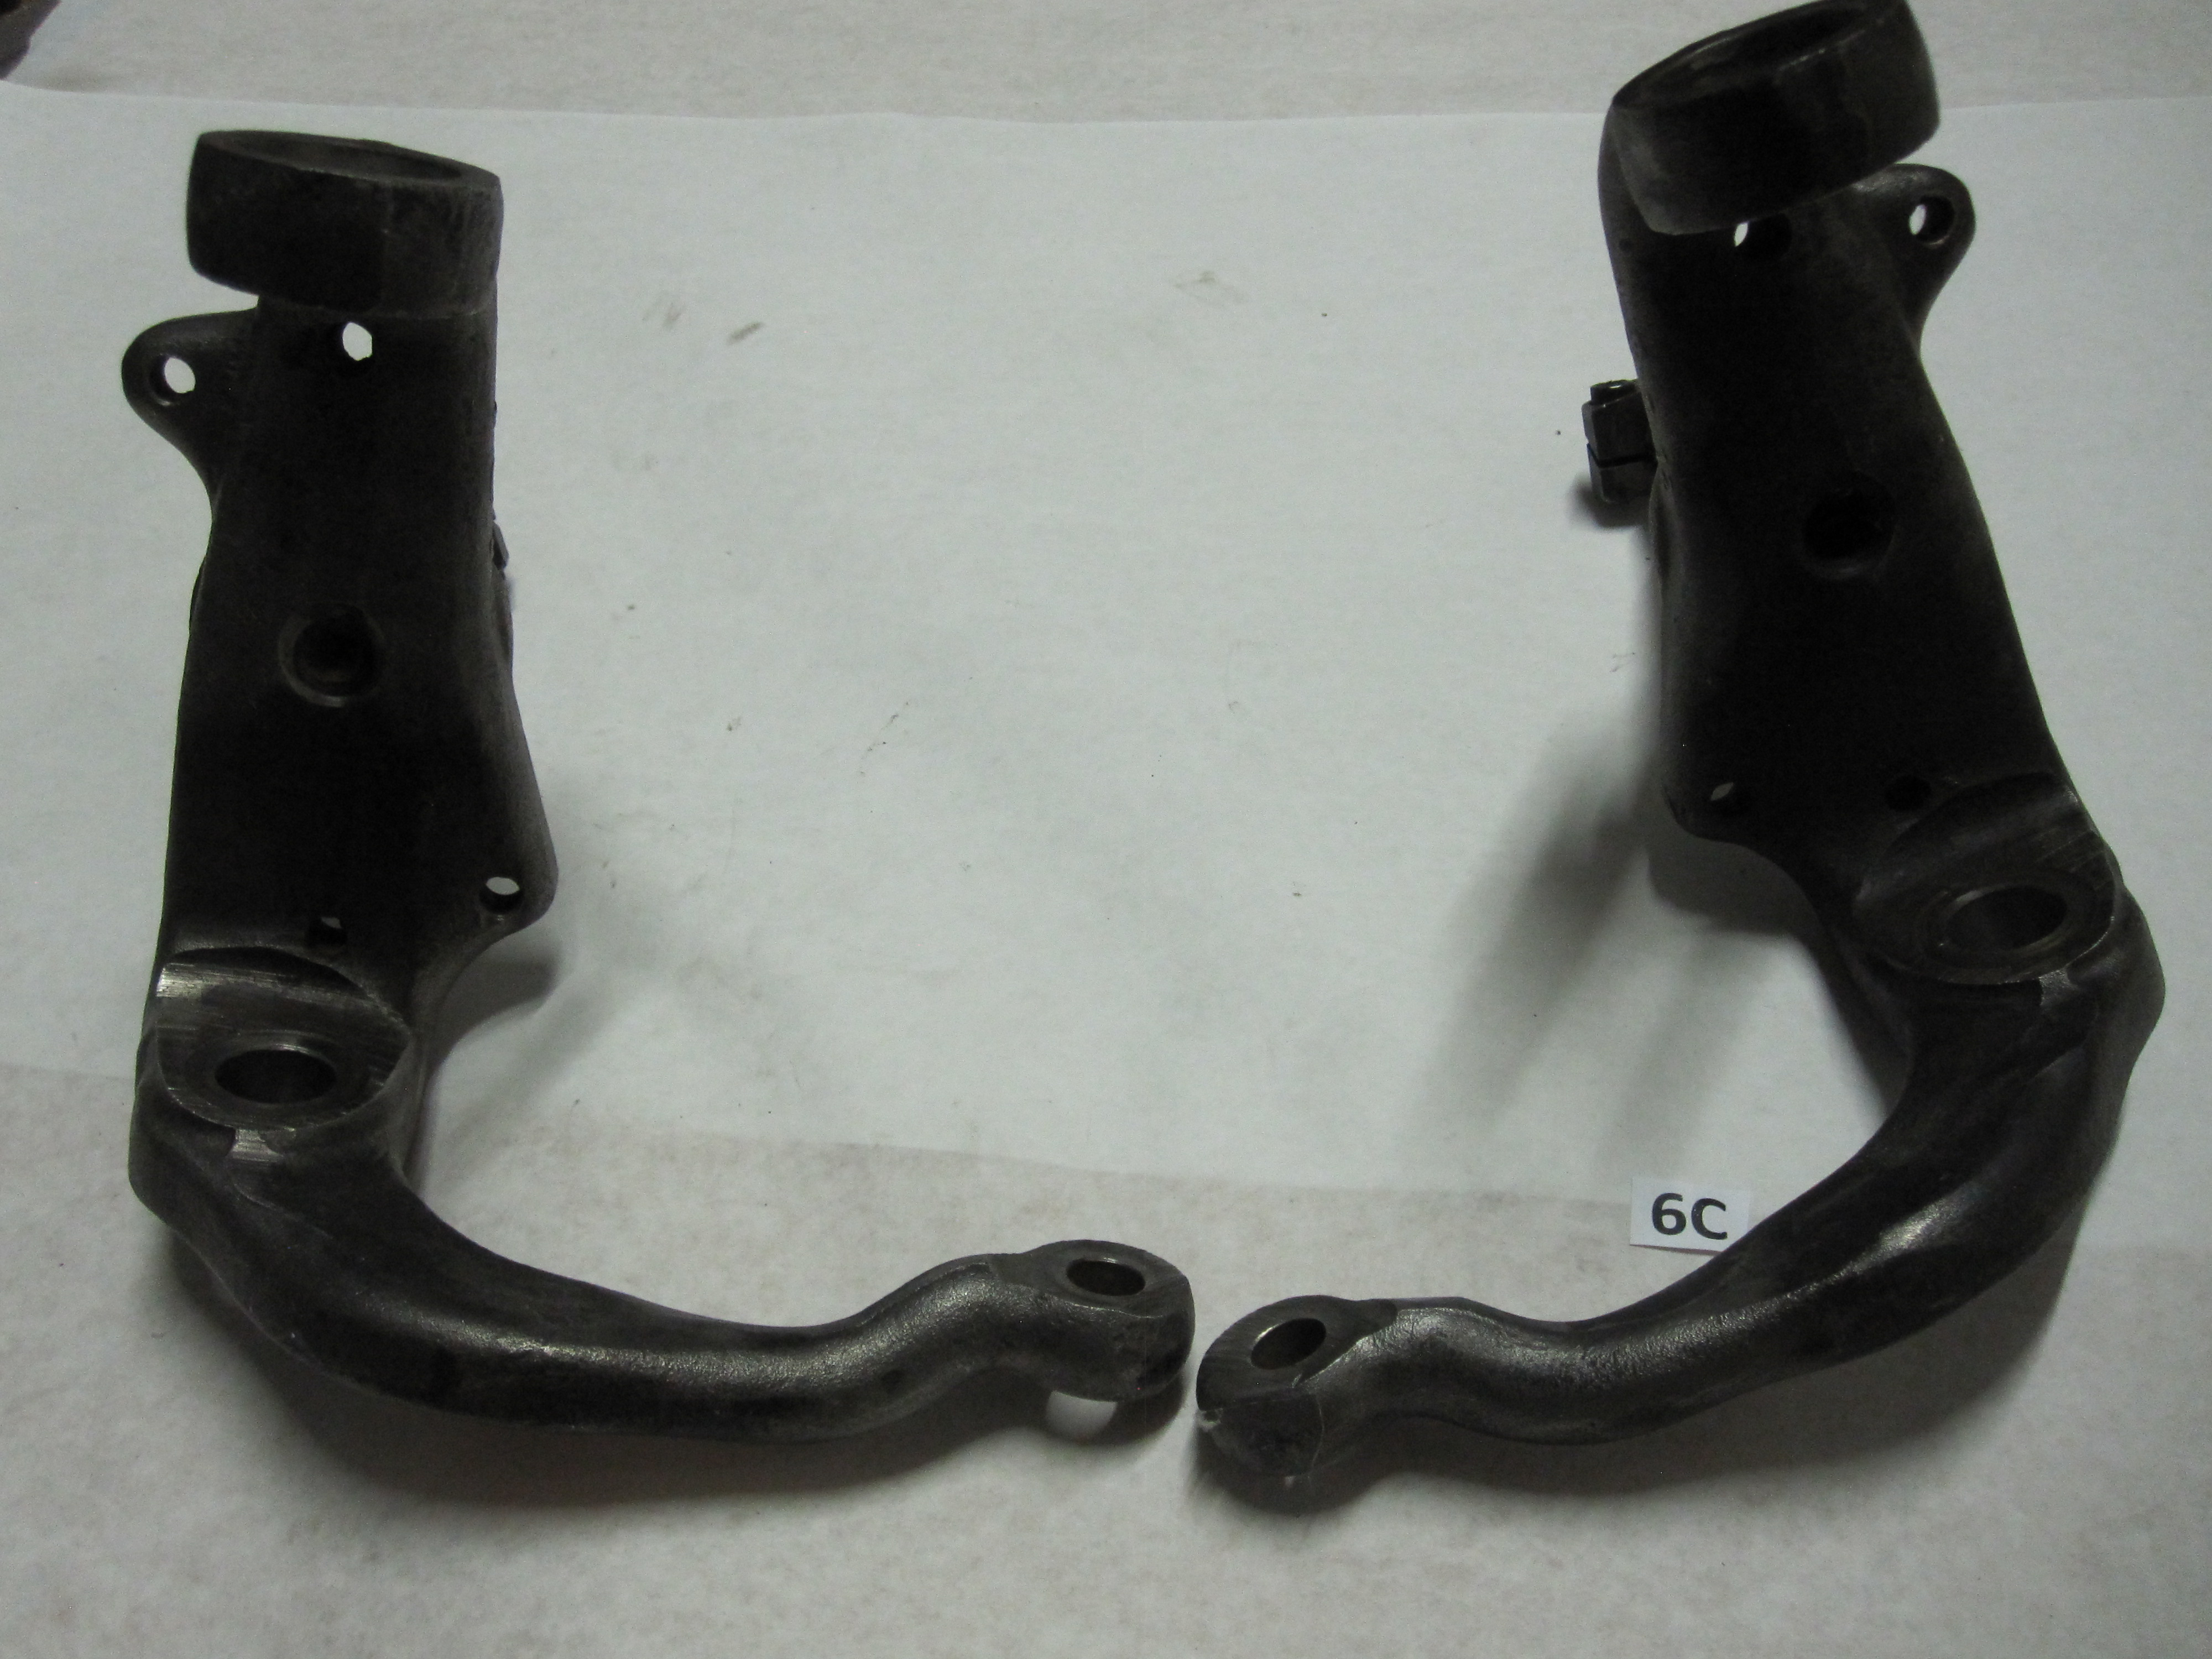 These are specialty spindles for a VW bus, van or